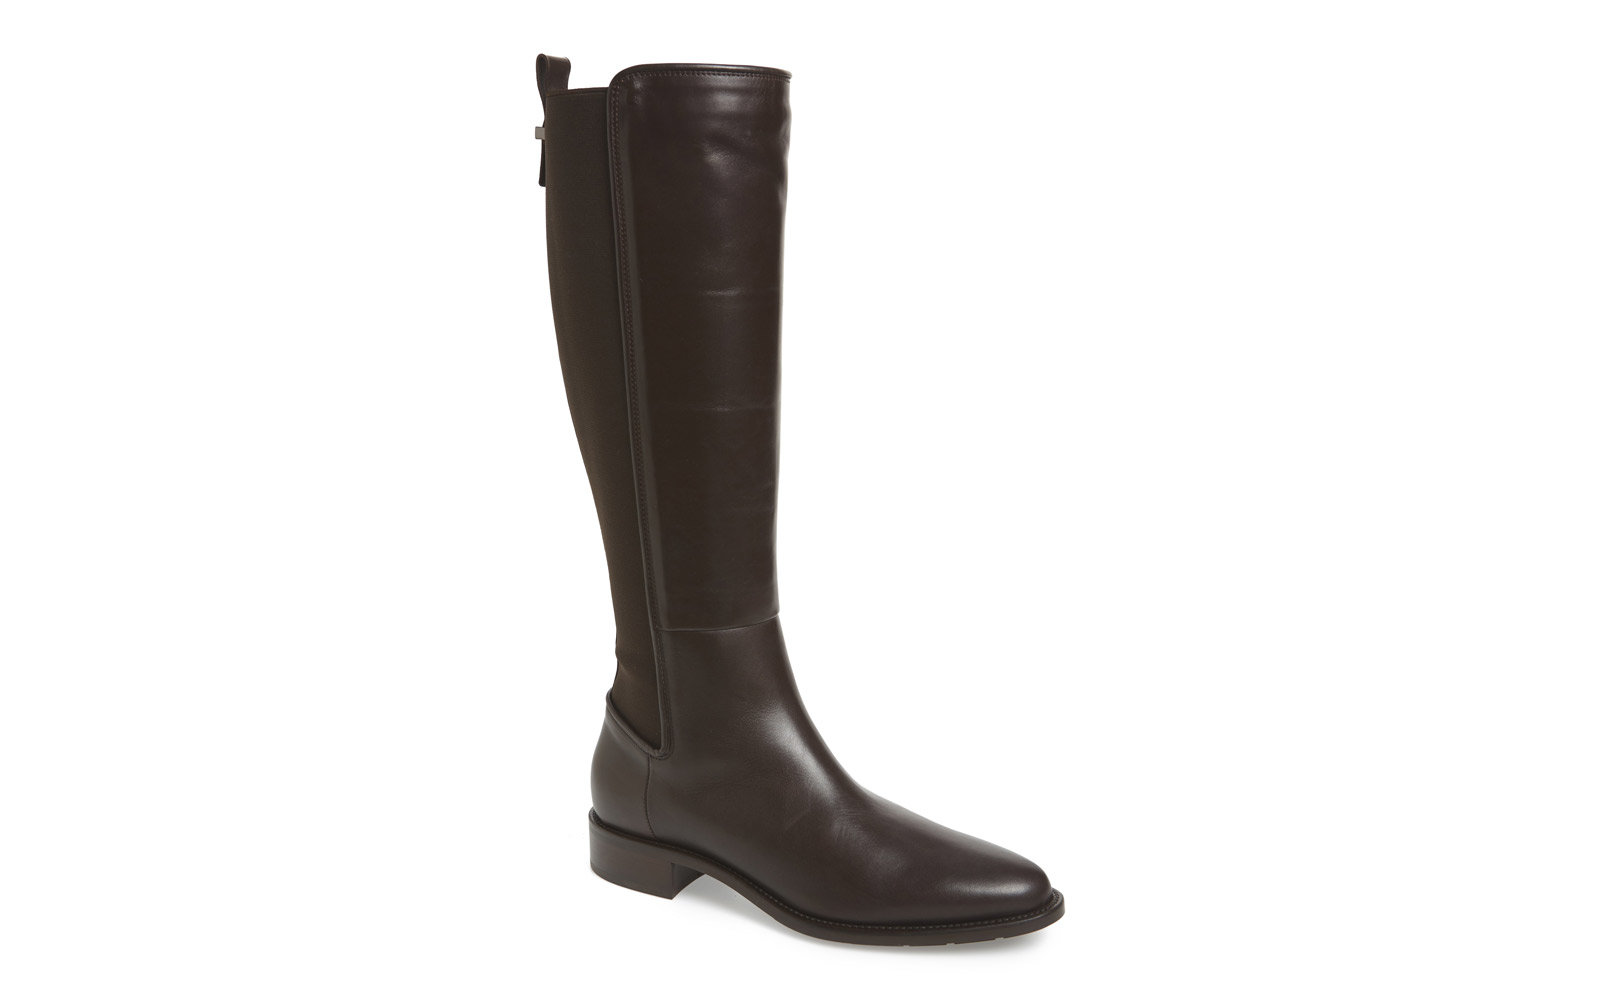 cc591dfa80bc0 Best for  A Comfortable Classic. Aquatalia weatherproof boot